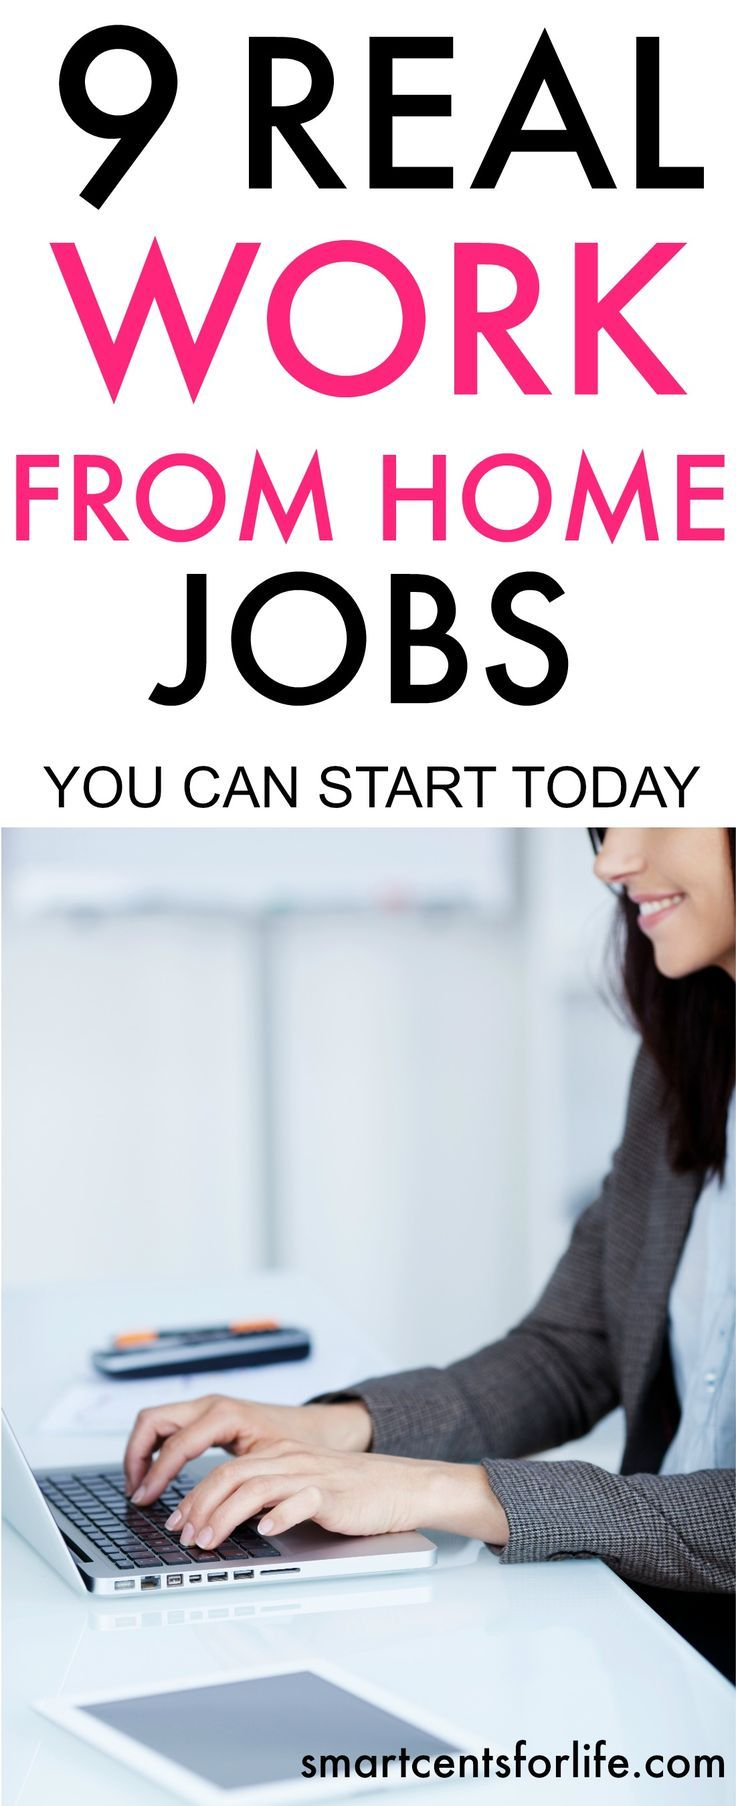 9 real work from home jobs to start today - Real Virtual Assistant Jobs